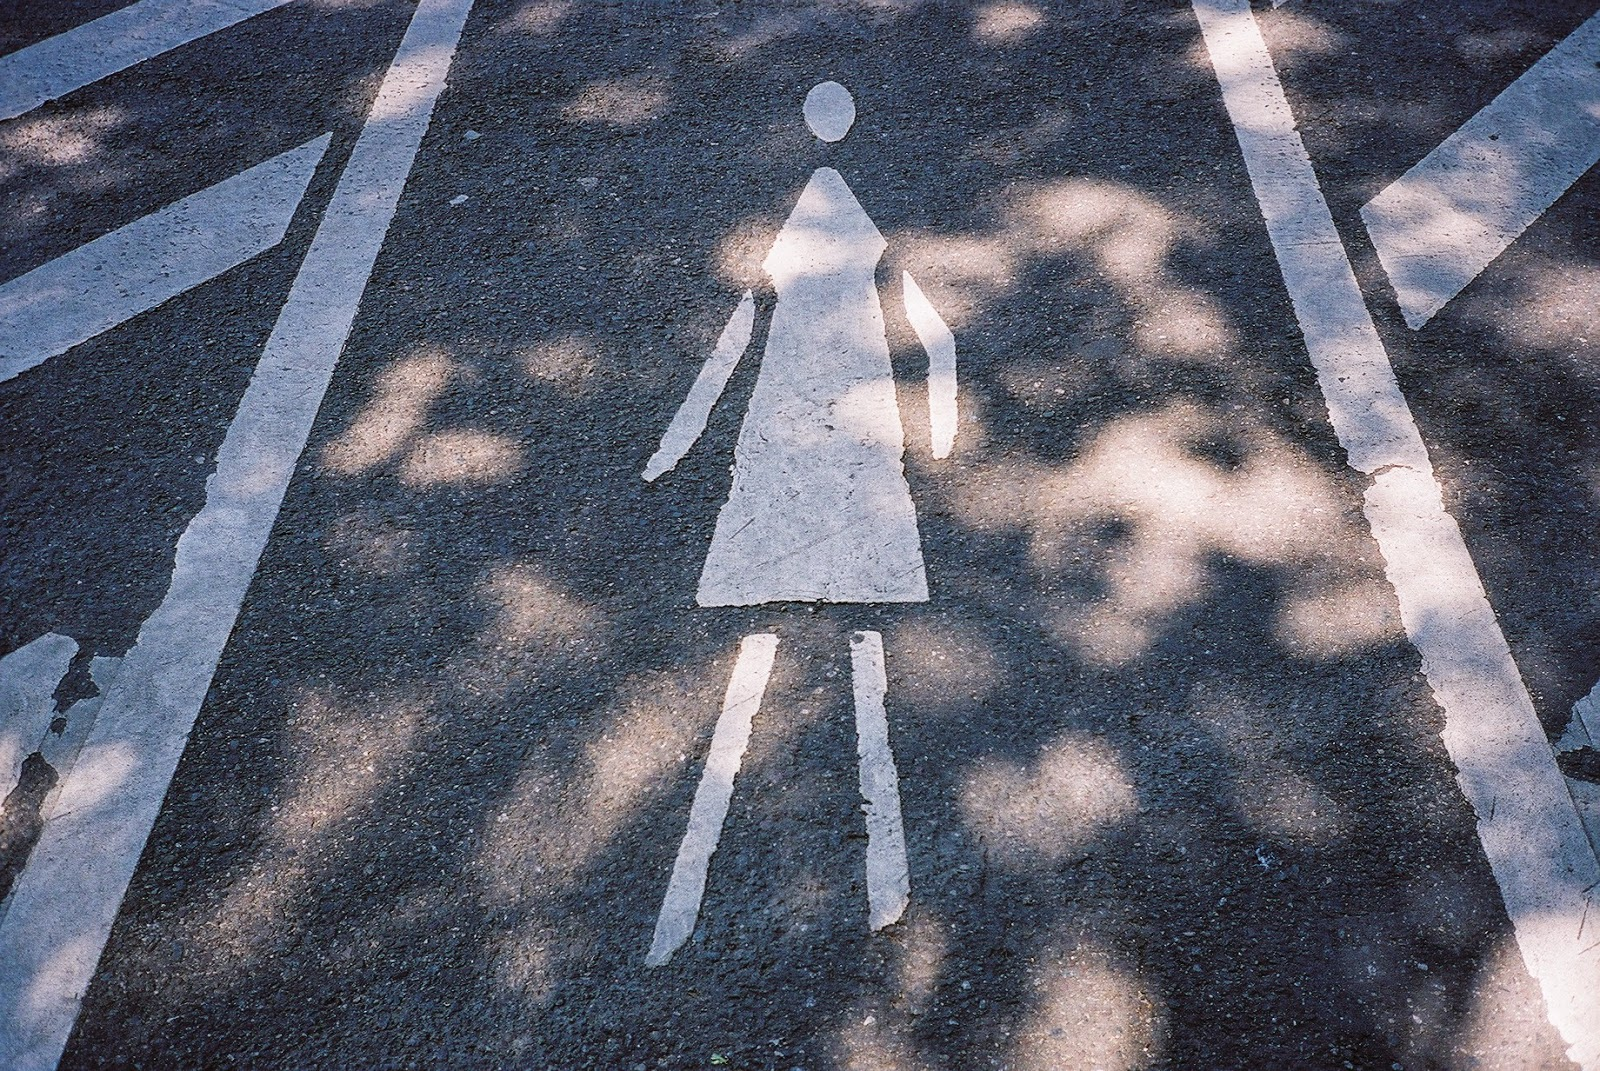 PICTOGRAMS, PEDESTRIAN CROSSINGS, GENDERED SIGNS, FEMALE PICTOGRAM, BERLIN, GERMANY, 2015 GENERAL ELECTION © VAC 100 DAYS 4 MILLION CONVERSATIONS